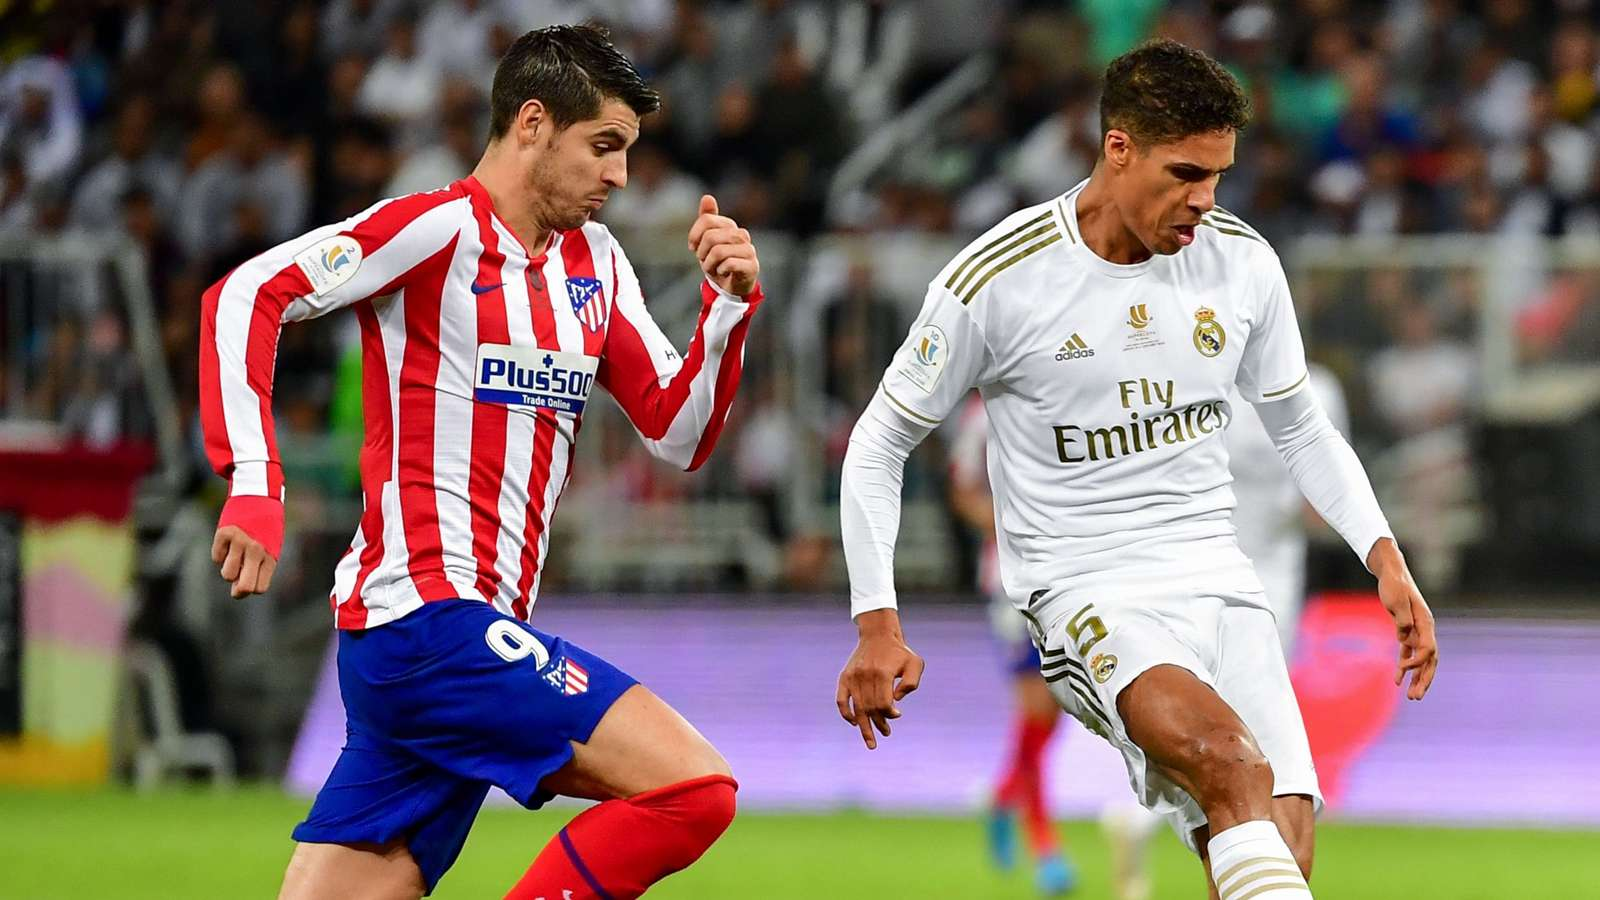 Real Madrid is the champion of the Spanish Super Cup for the 11th time at the expense of Atletico